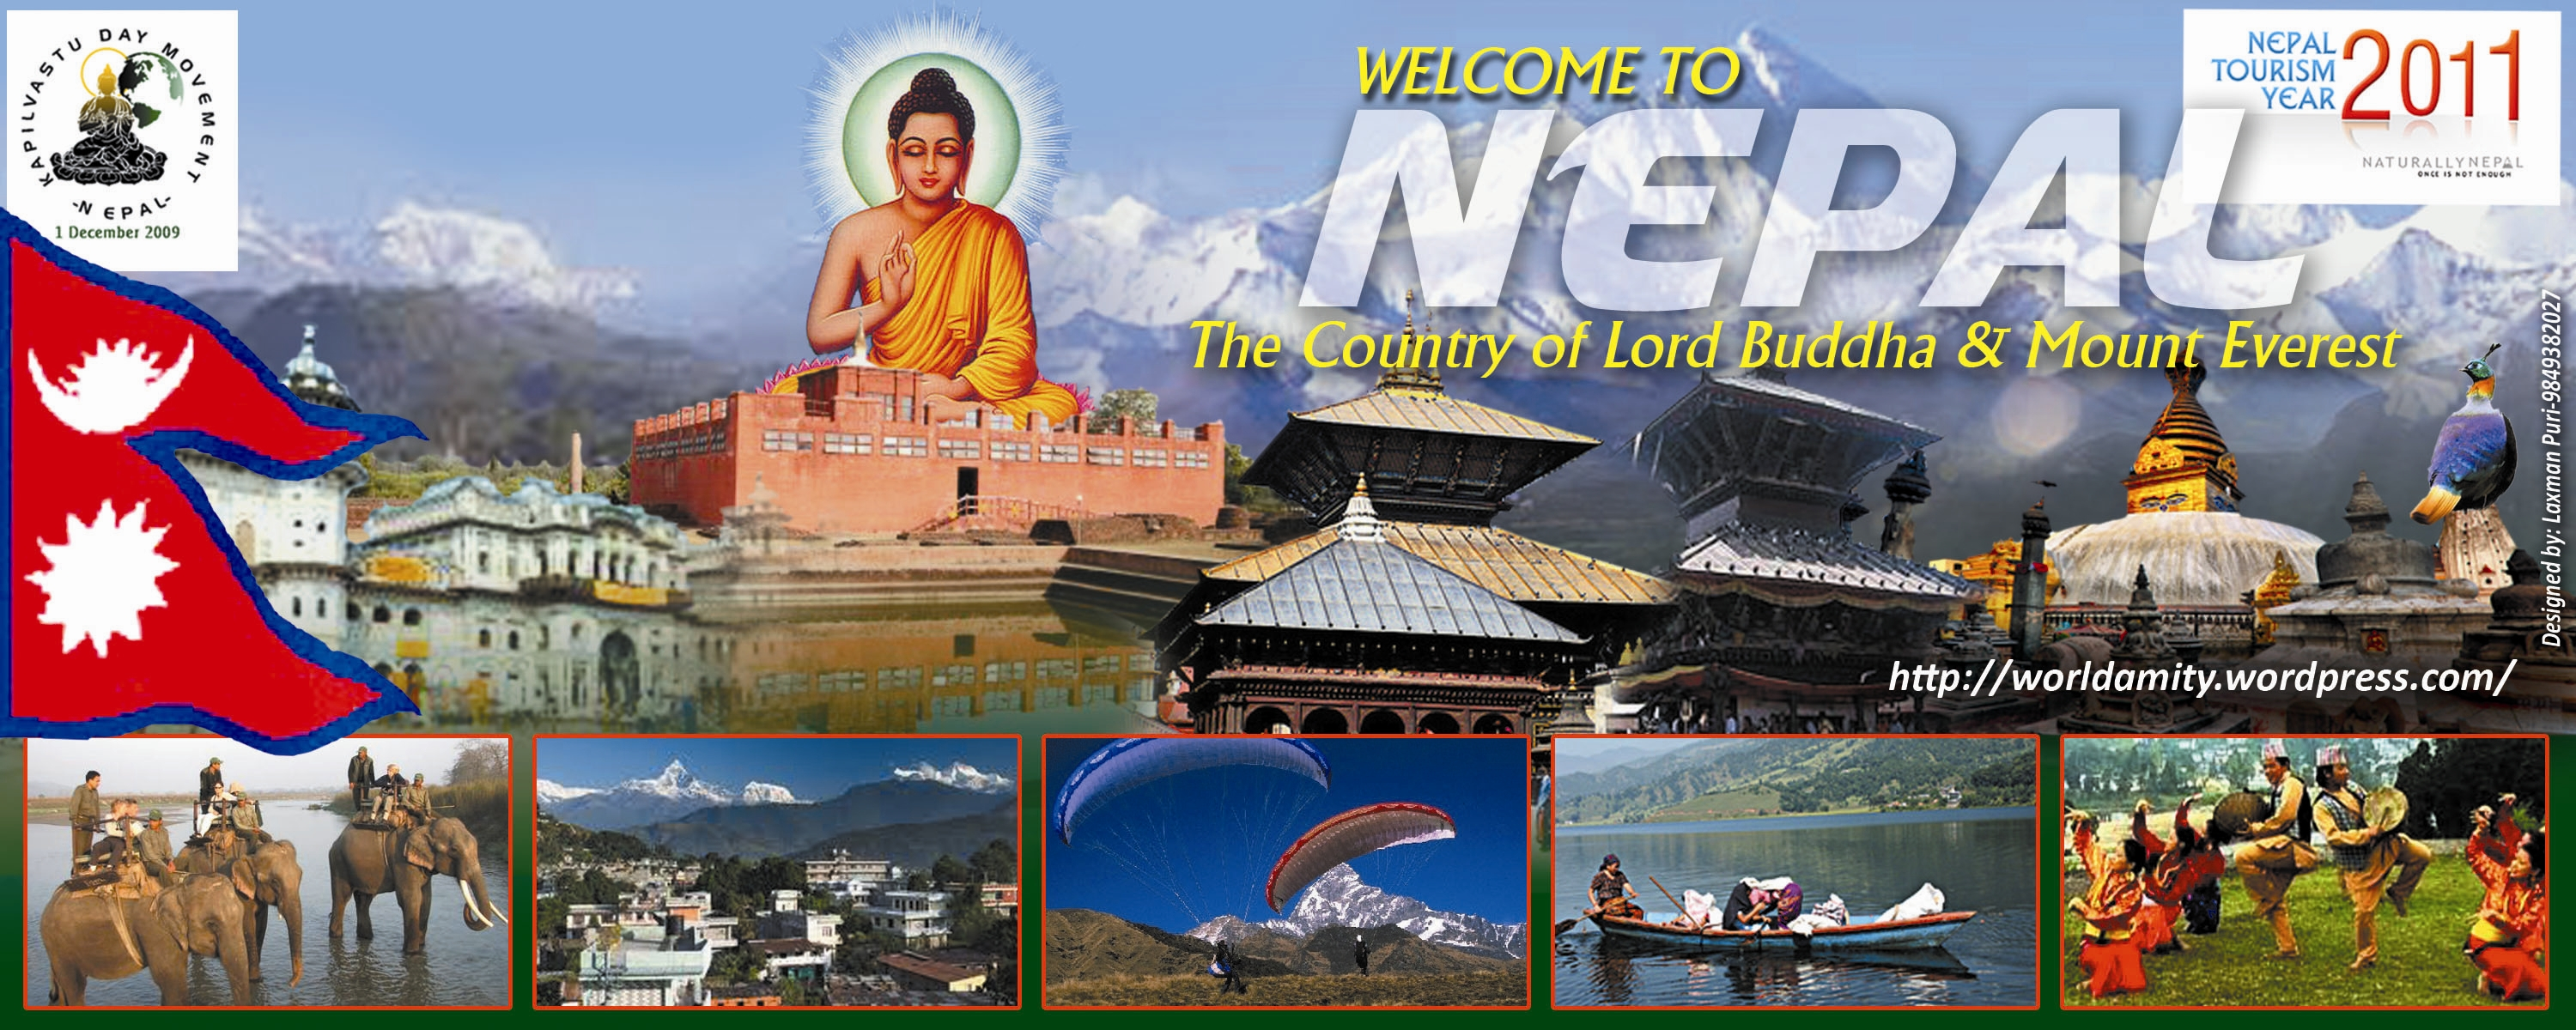 nepal tourism year Nepal tourism year 2016 / 2017 / 2018 special programs  the tour below is one of contrasts you will have time to explore the temples, squares and palaces of kathmandu and also walk through beautiful foothills covered in picturesque villages and terraced fields.